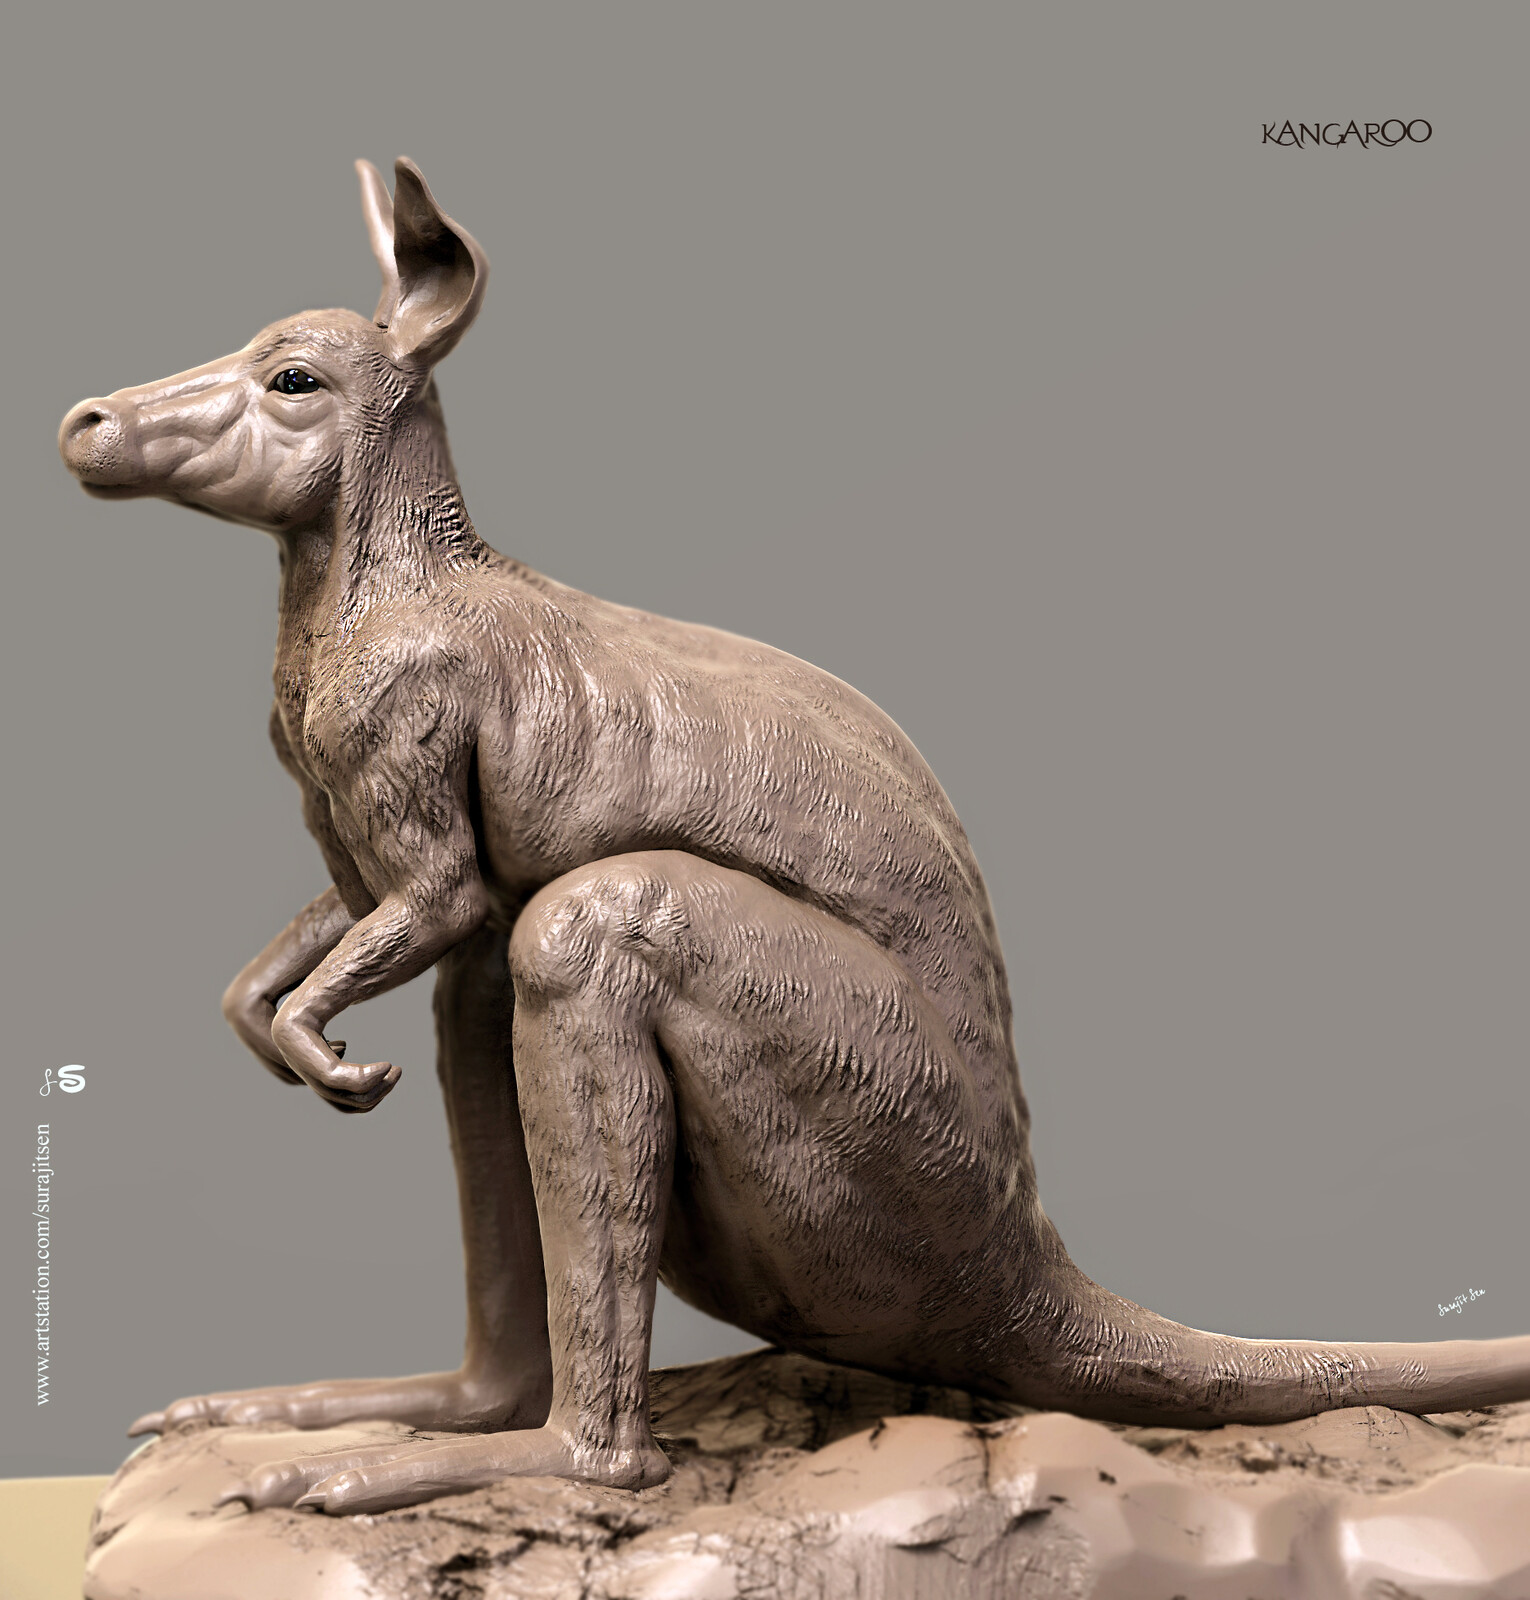 My free time quick Digital Sculpting study.... Kangaroo.  Played with brushes.  Background music- #hanszimmermusic